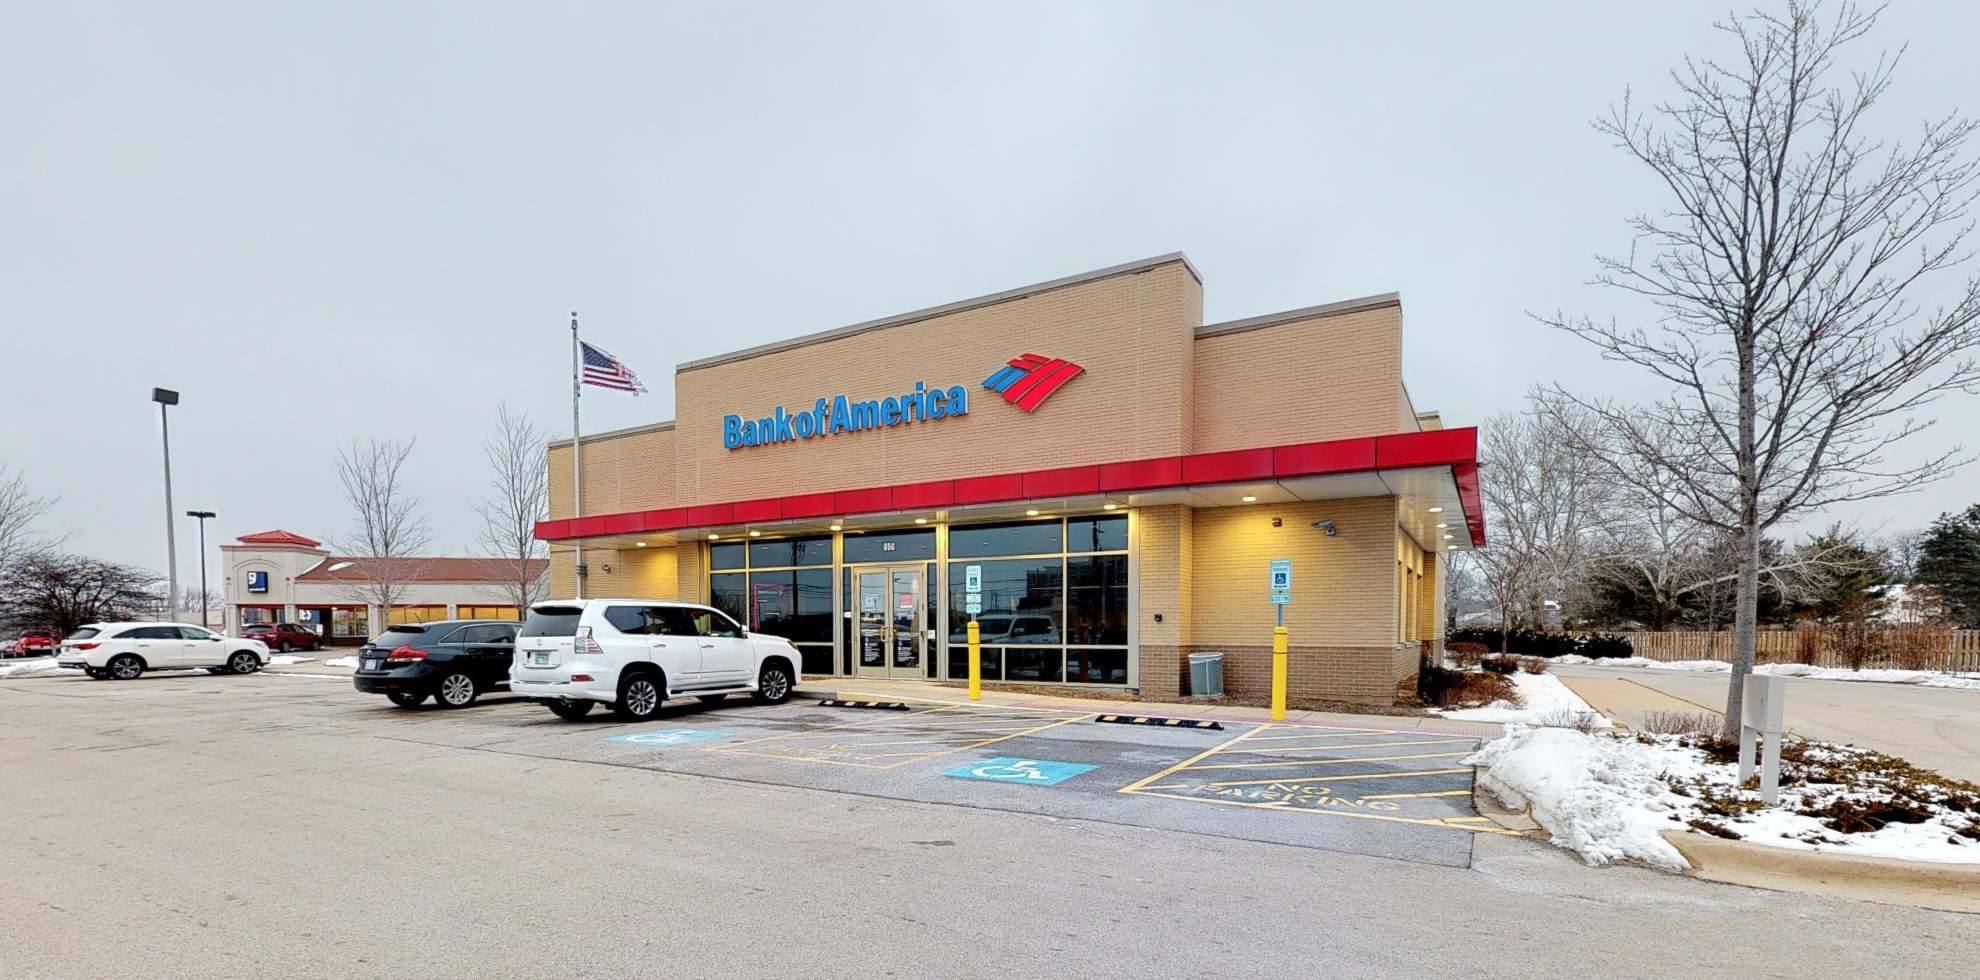 Bank of America financial center with drive-thru ATM   850 W Algonquin Rd, Arlington Heights, IL 60005